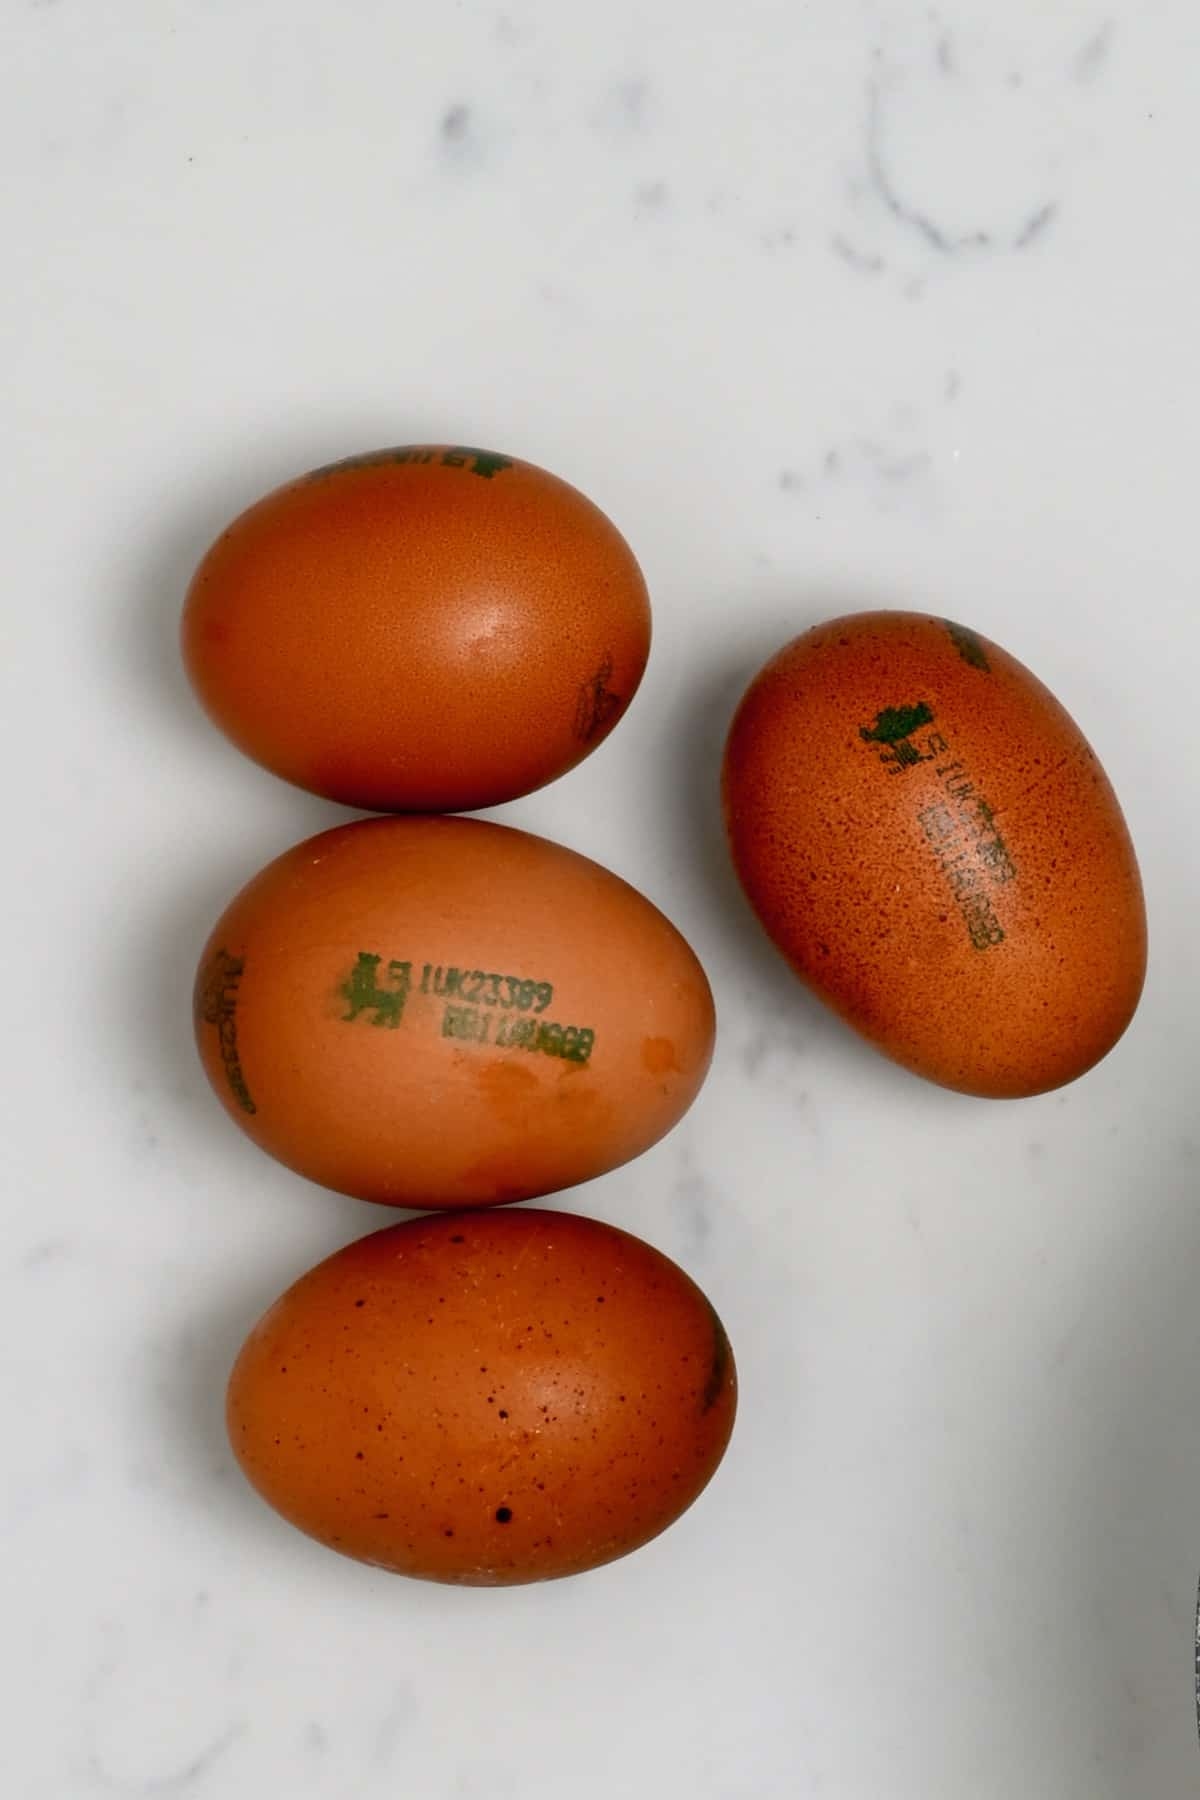 Four eggs on a flat surface